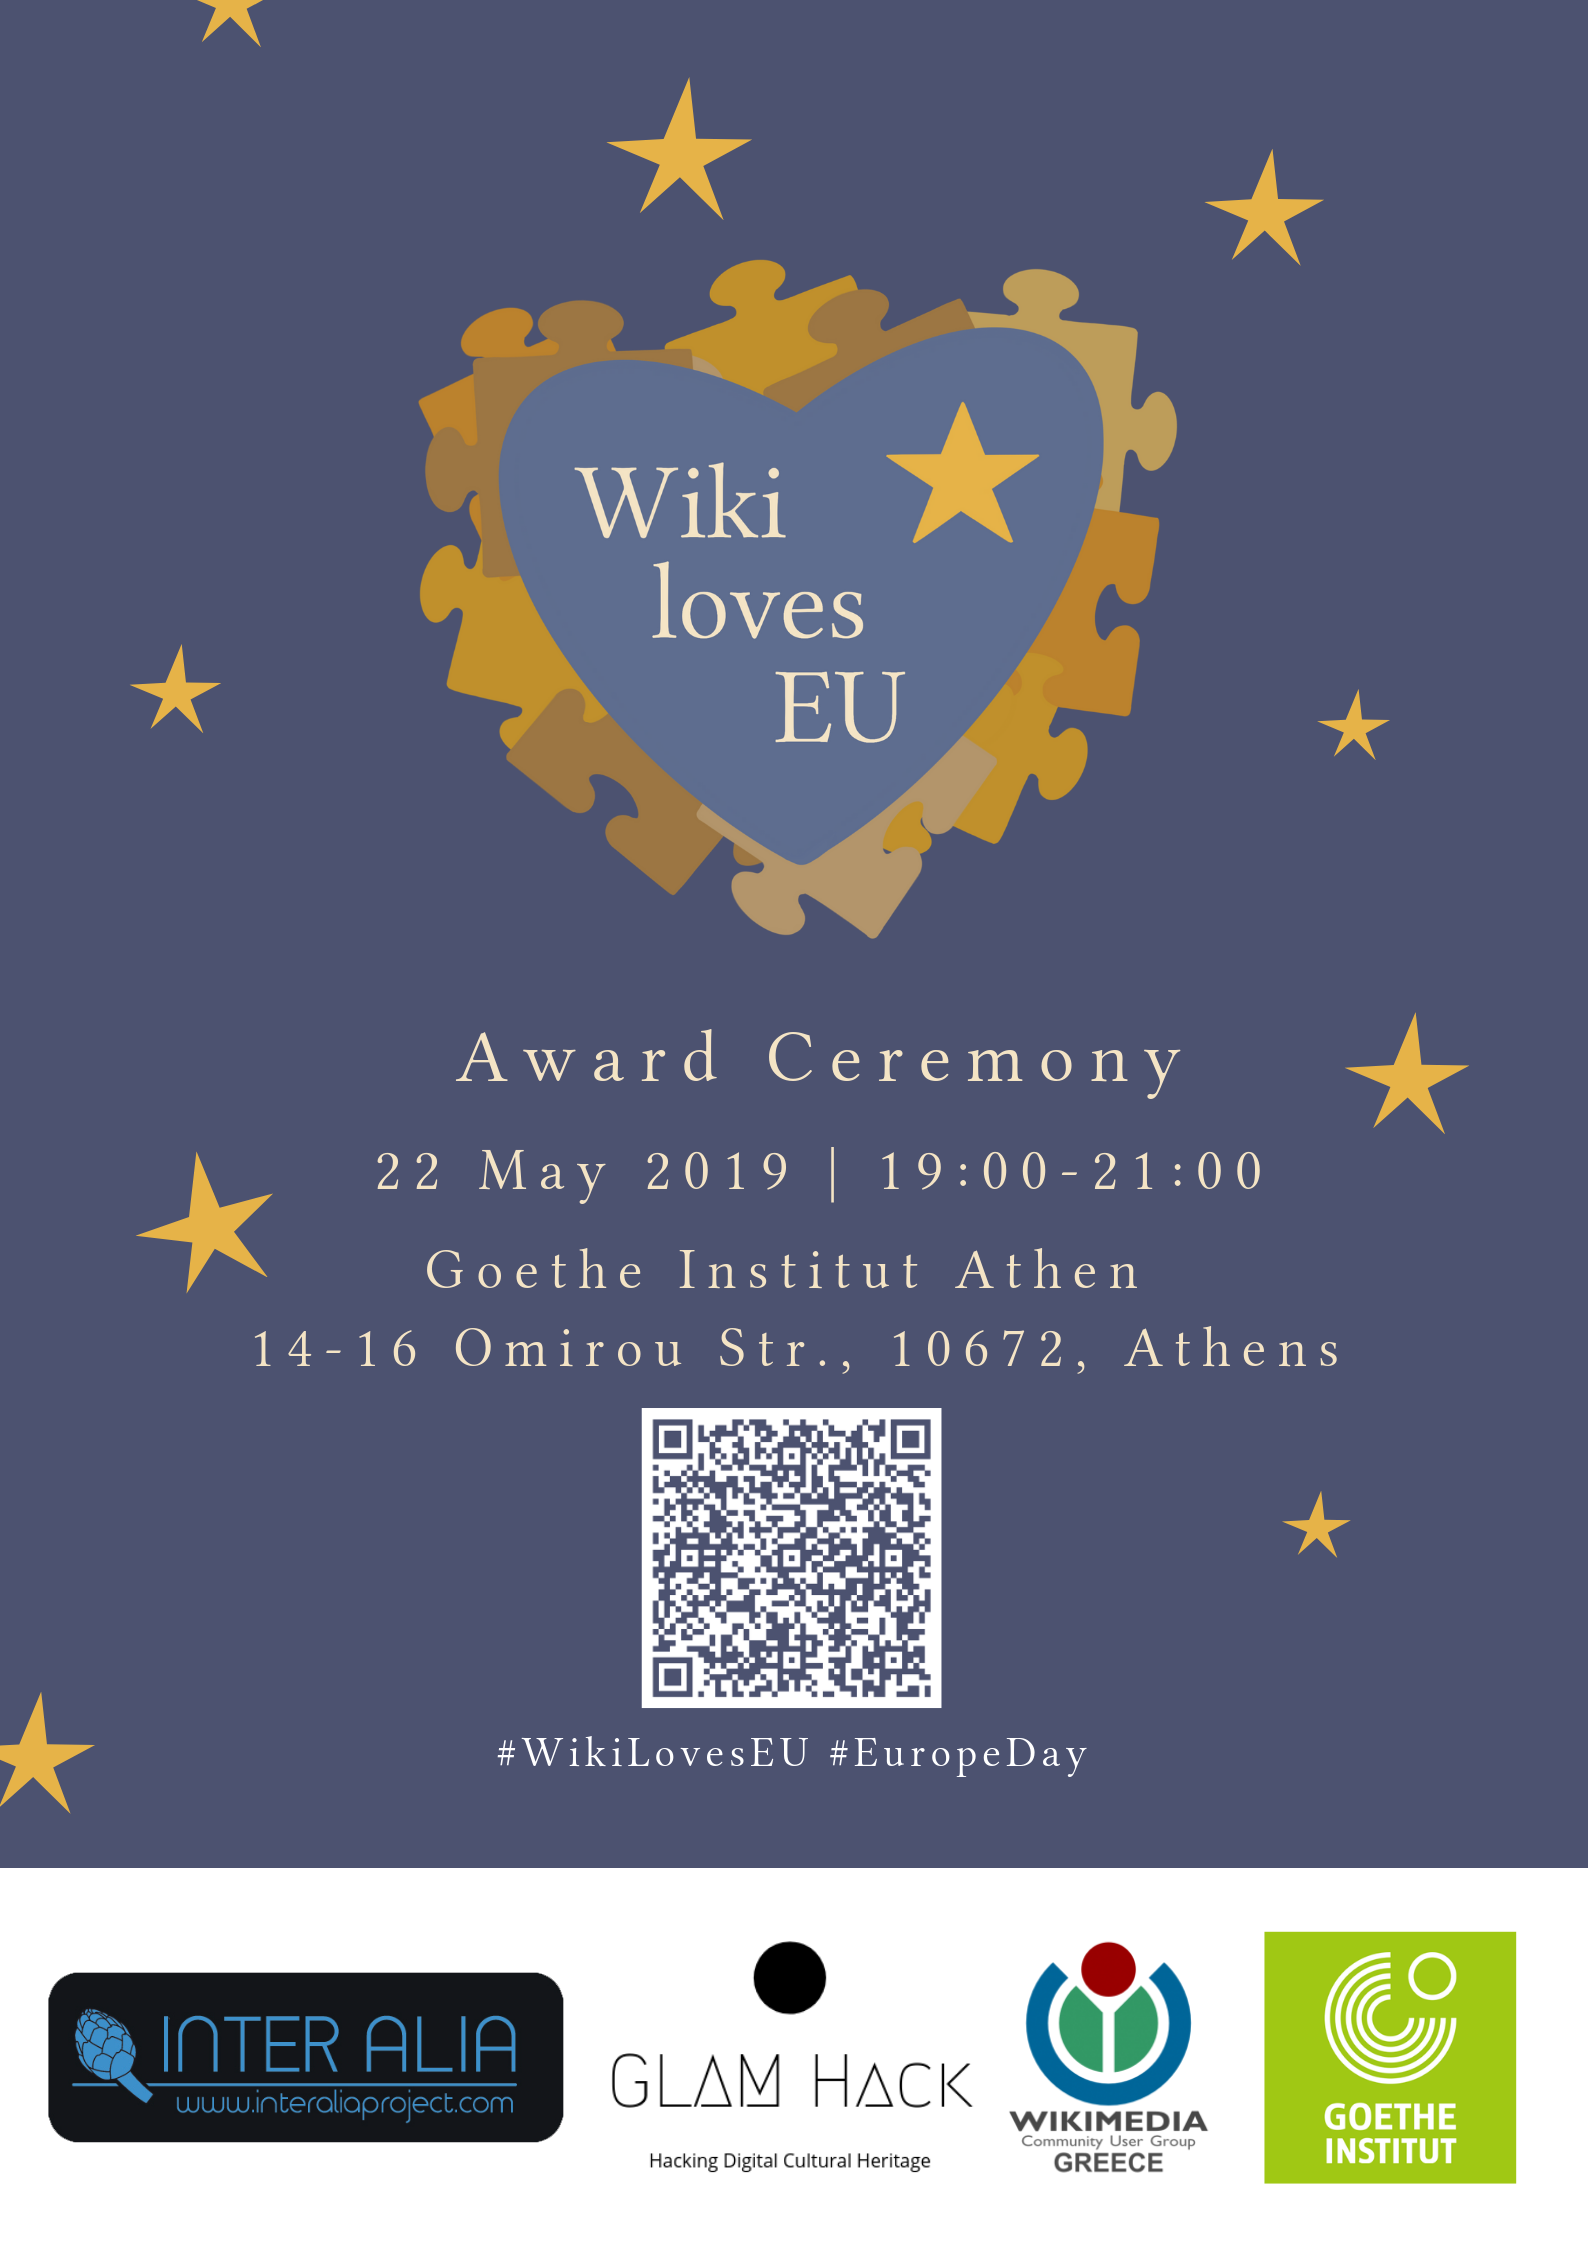 Wiki Loves EU Award Ceremony